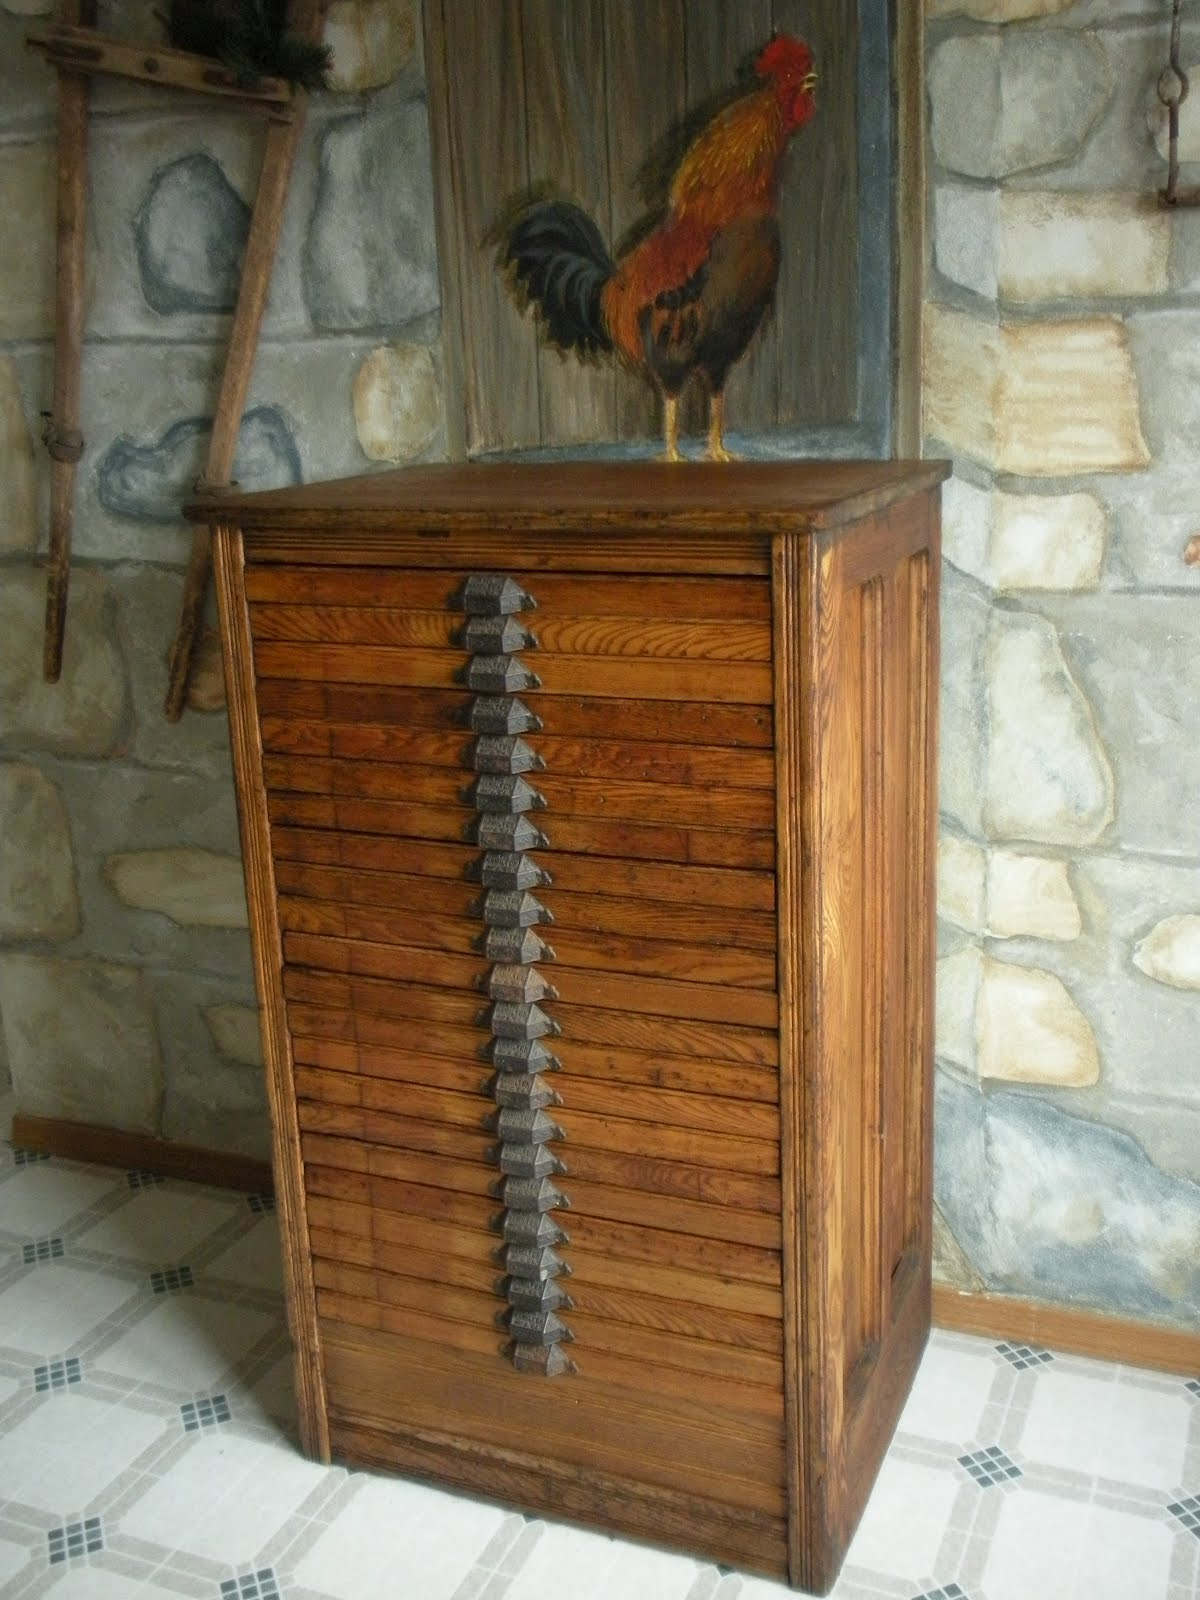 Raevn S Nest Printers Cabinet Now Holds Jewelry Making